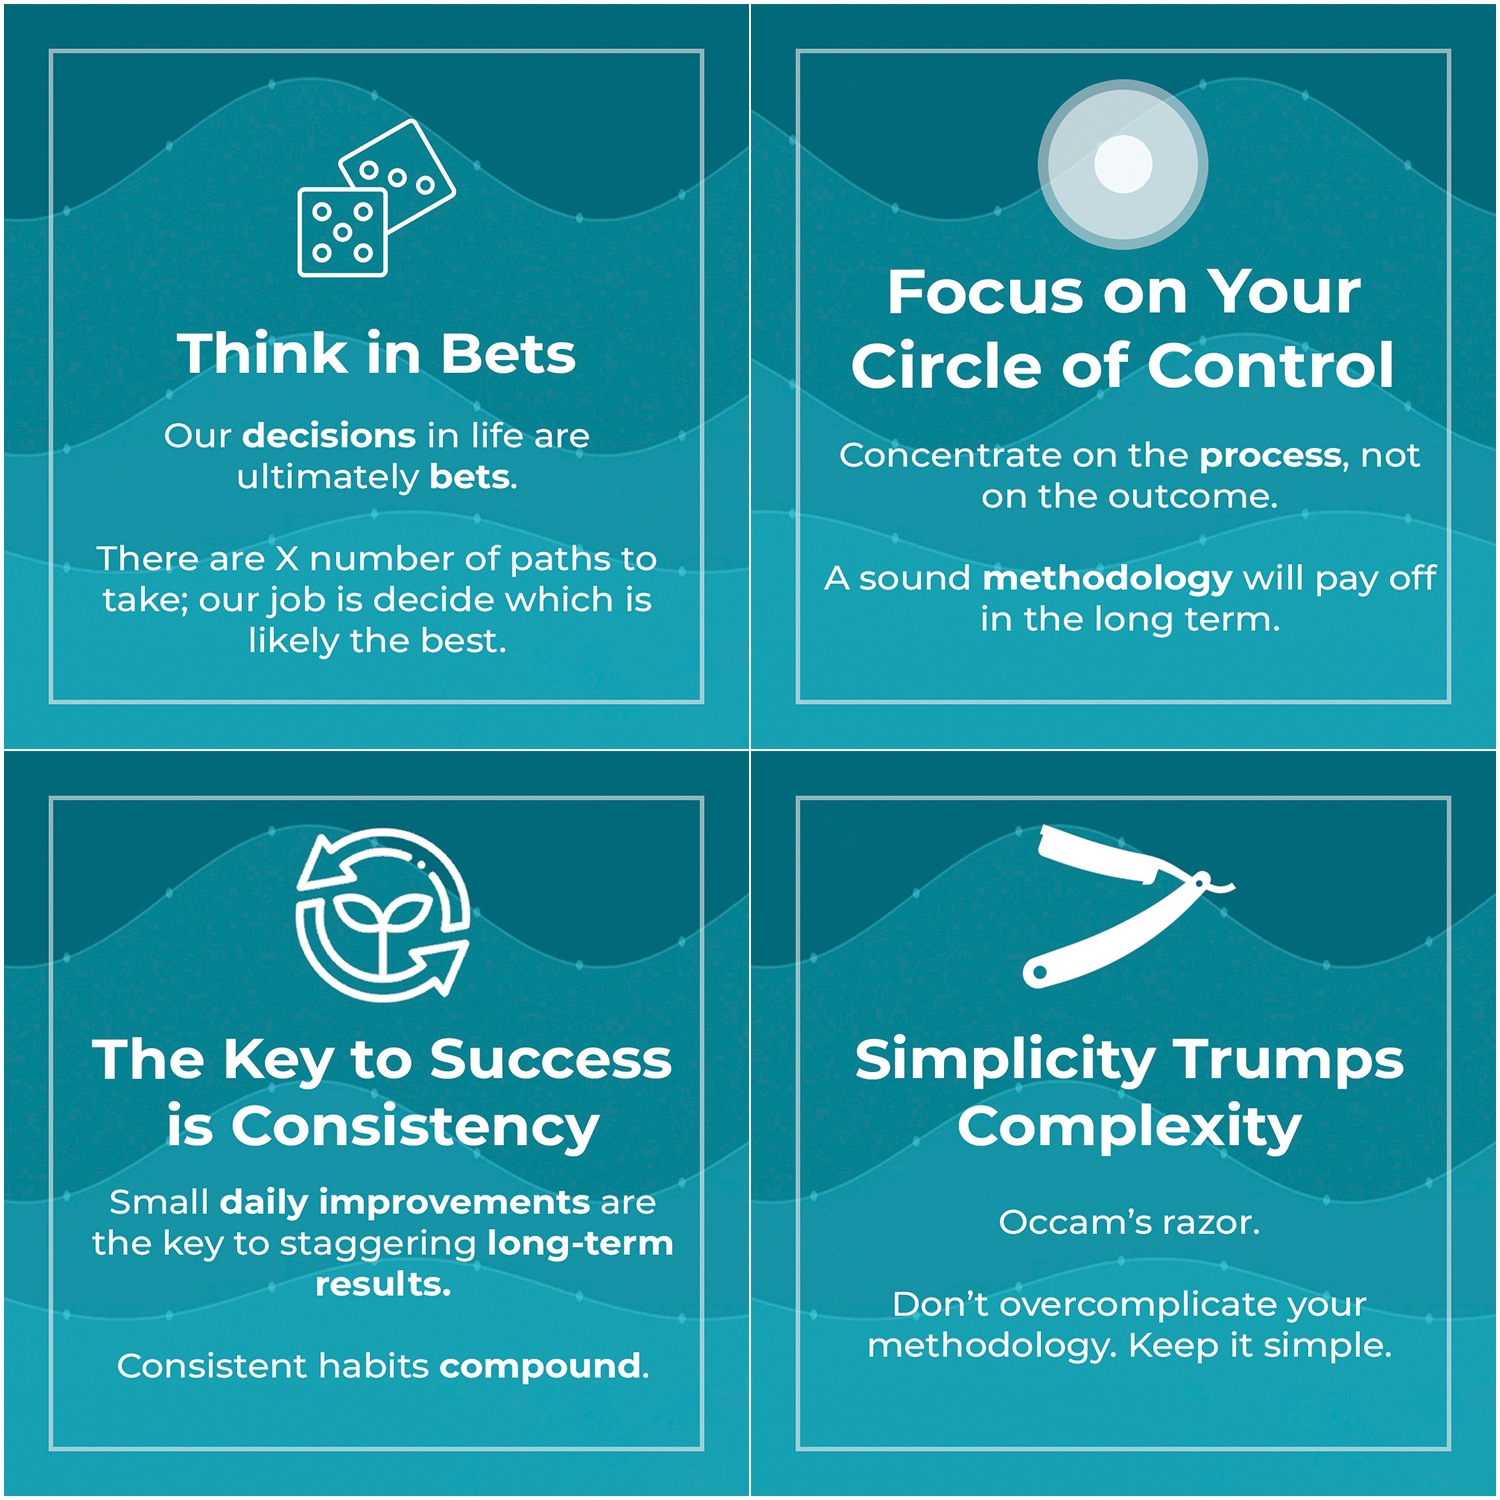 think in bets, circle of control, consistency, simplicity